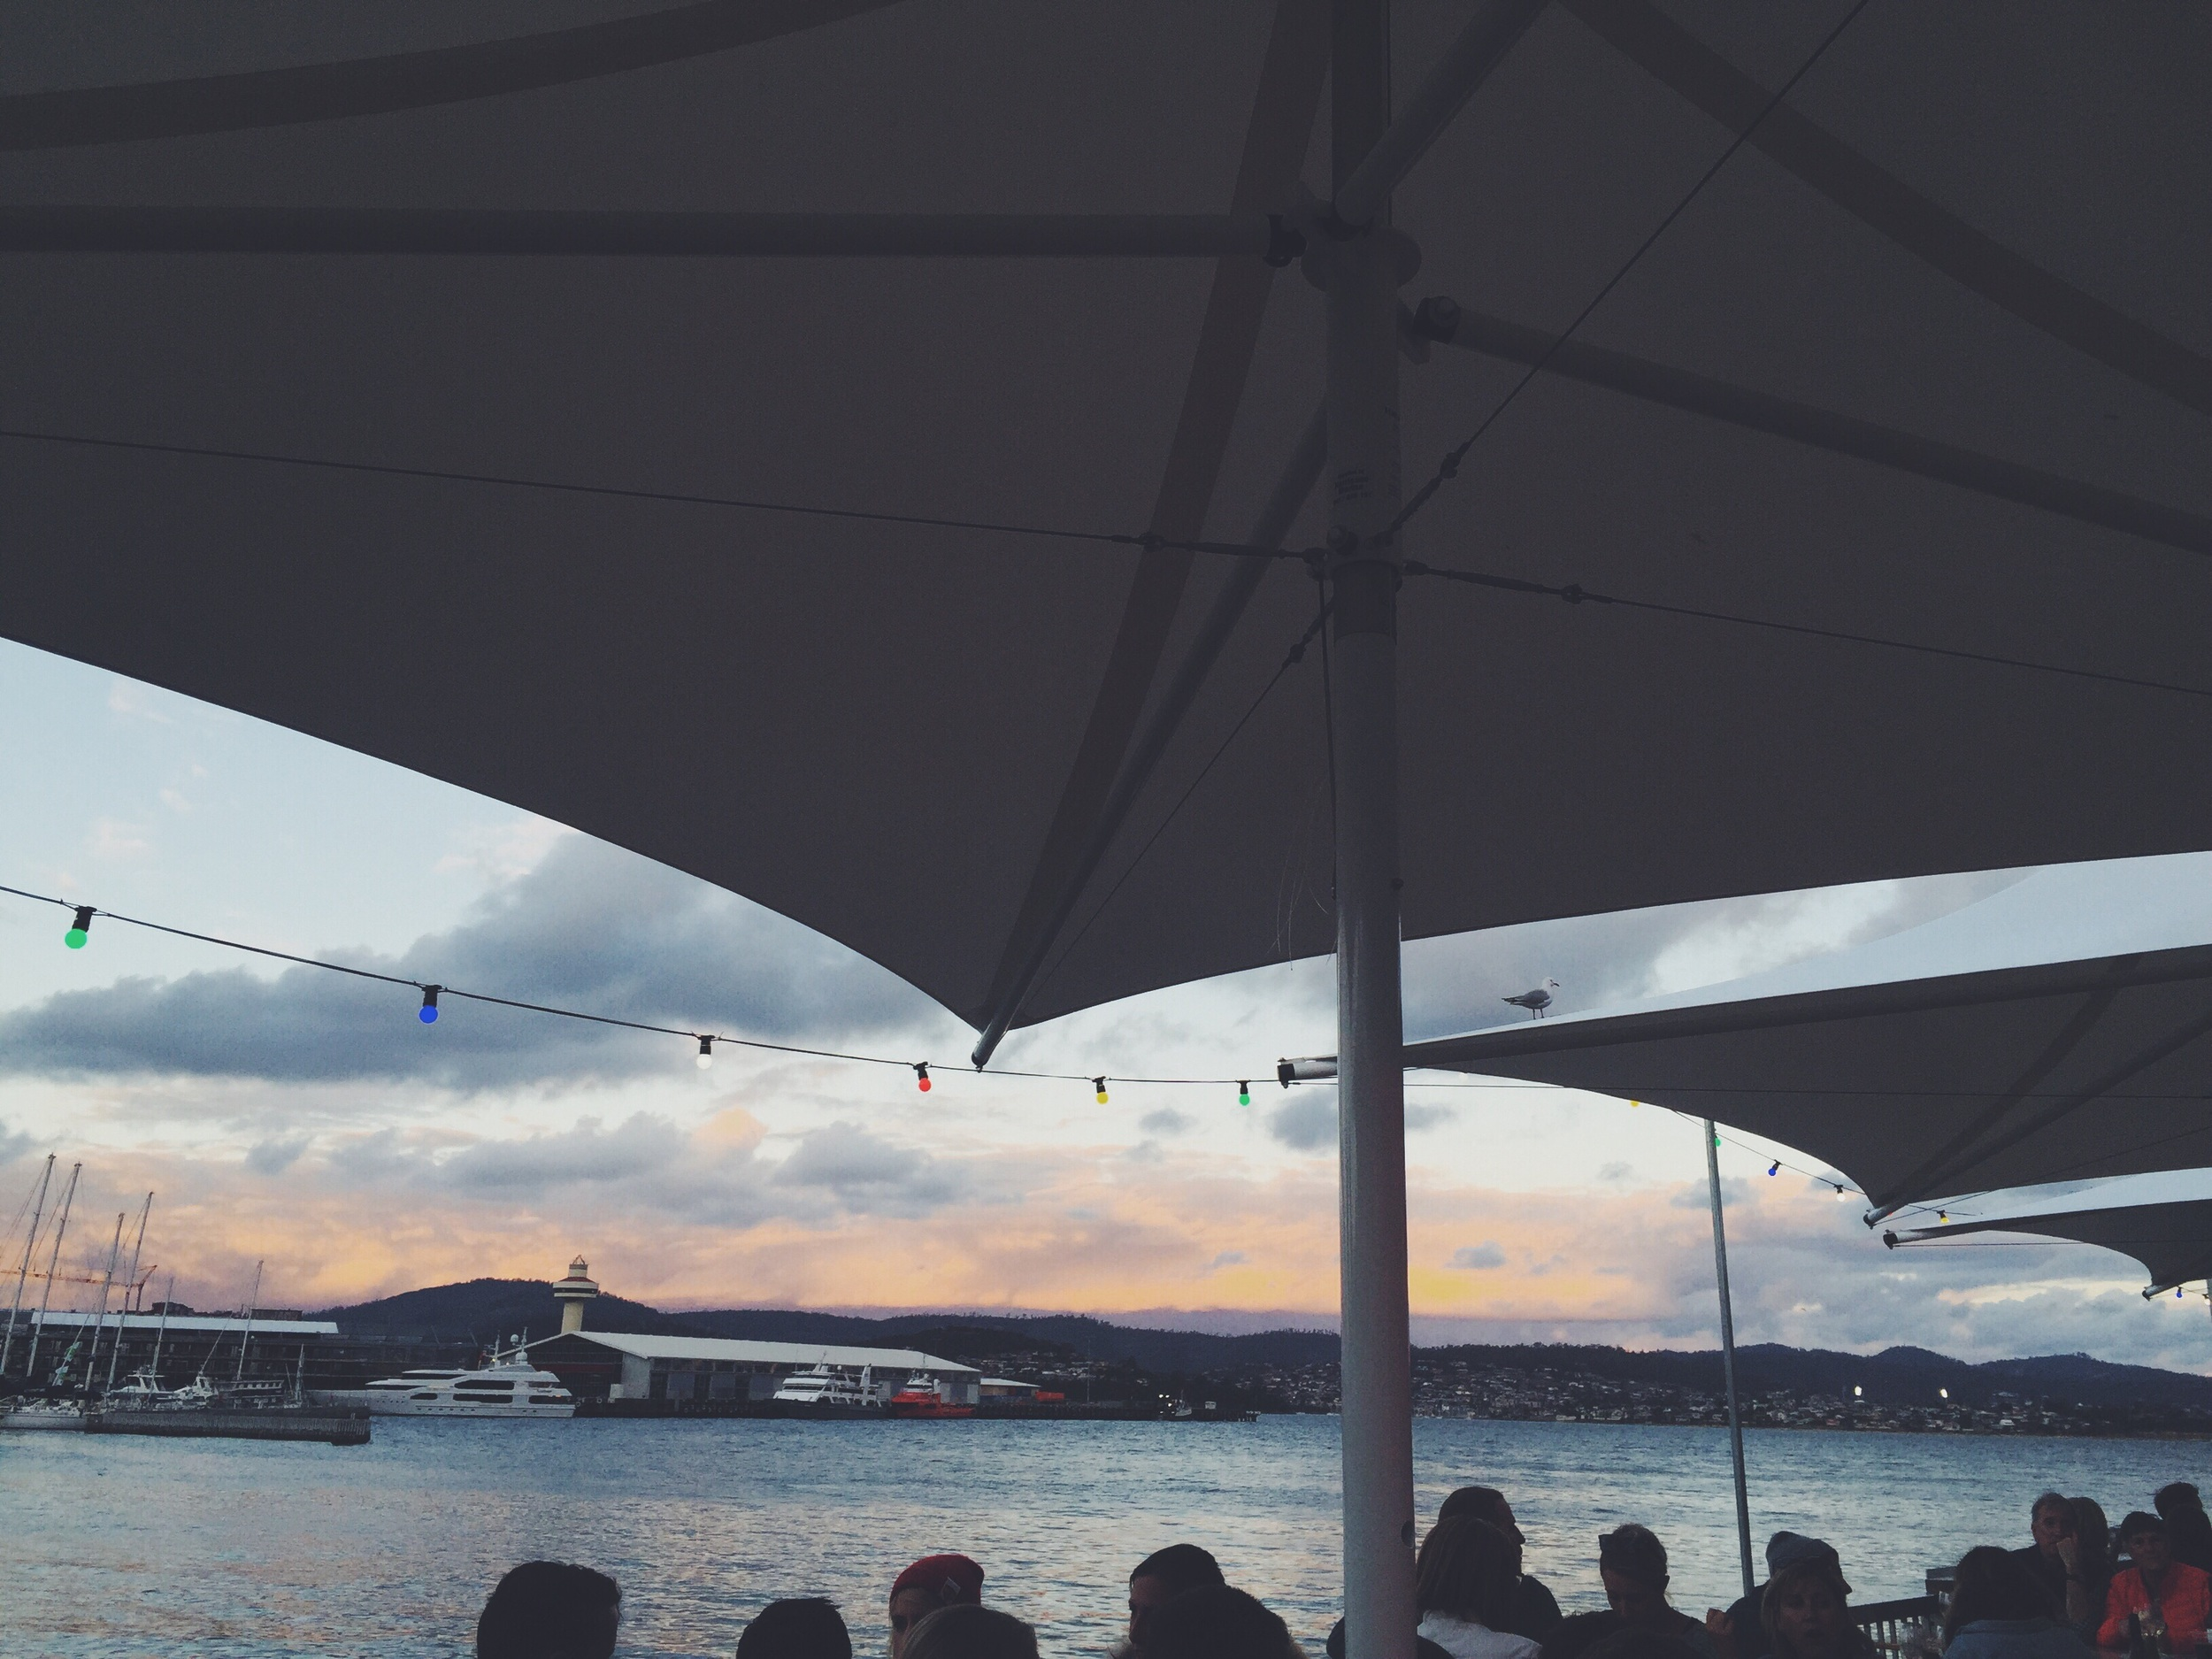 More from the outdoor seating area on the wharf